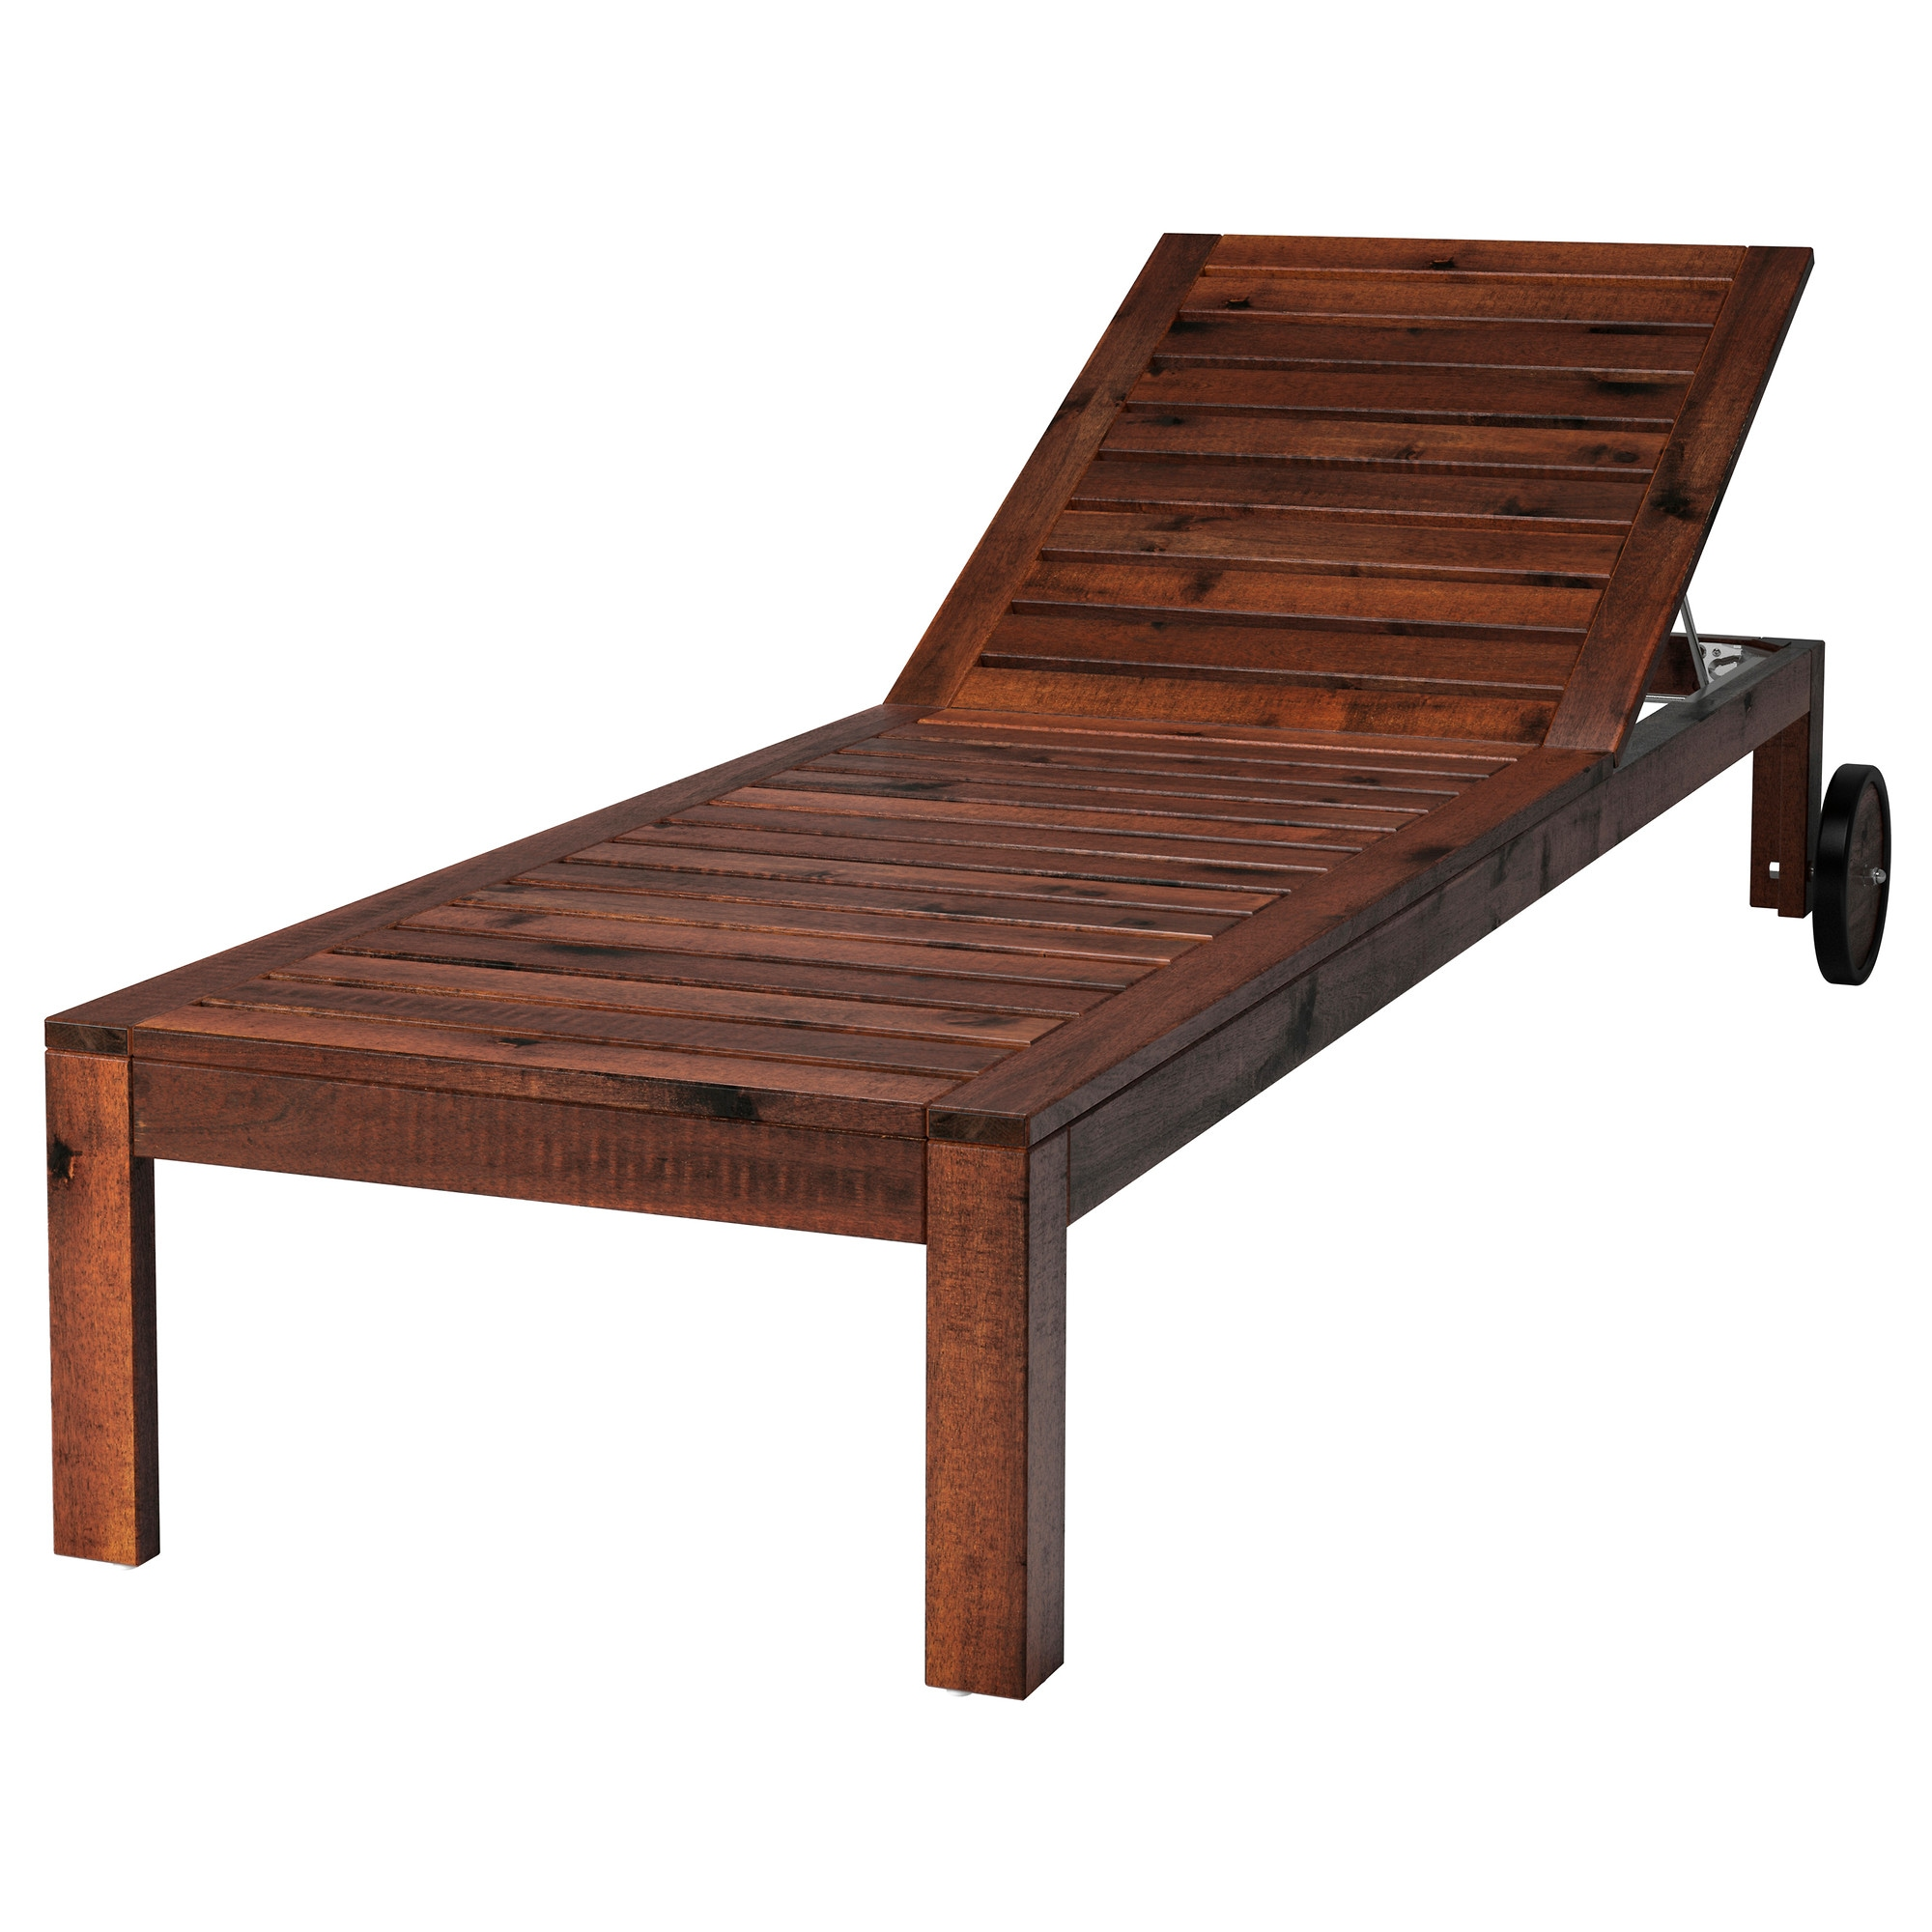 Wooden beach lounge chair -  Pplar Chaise Brown Brown Stained Length 78 3 8 Width 28